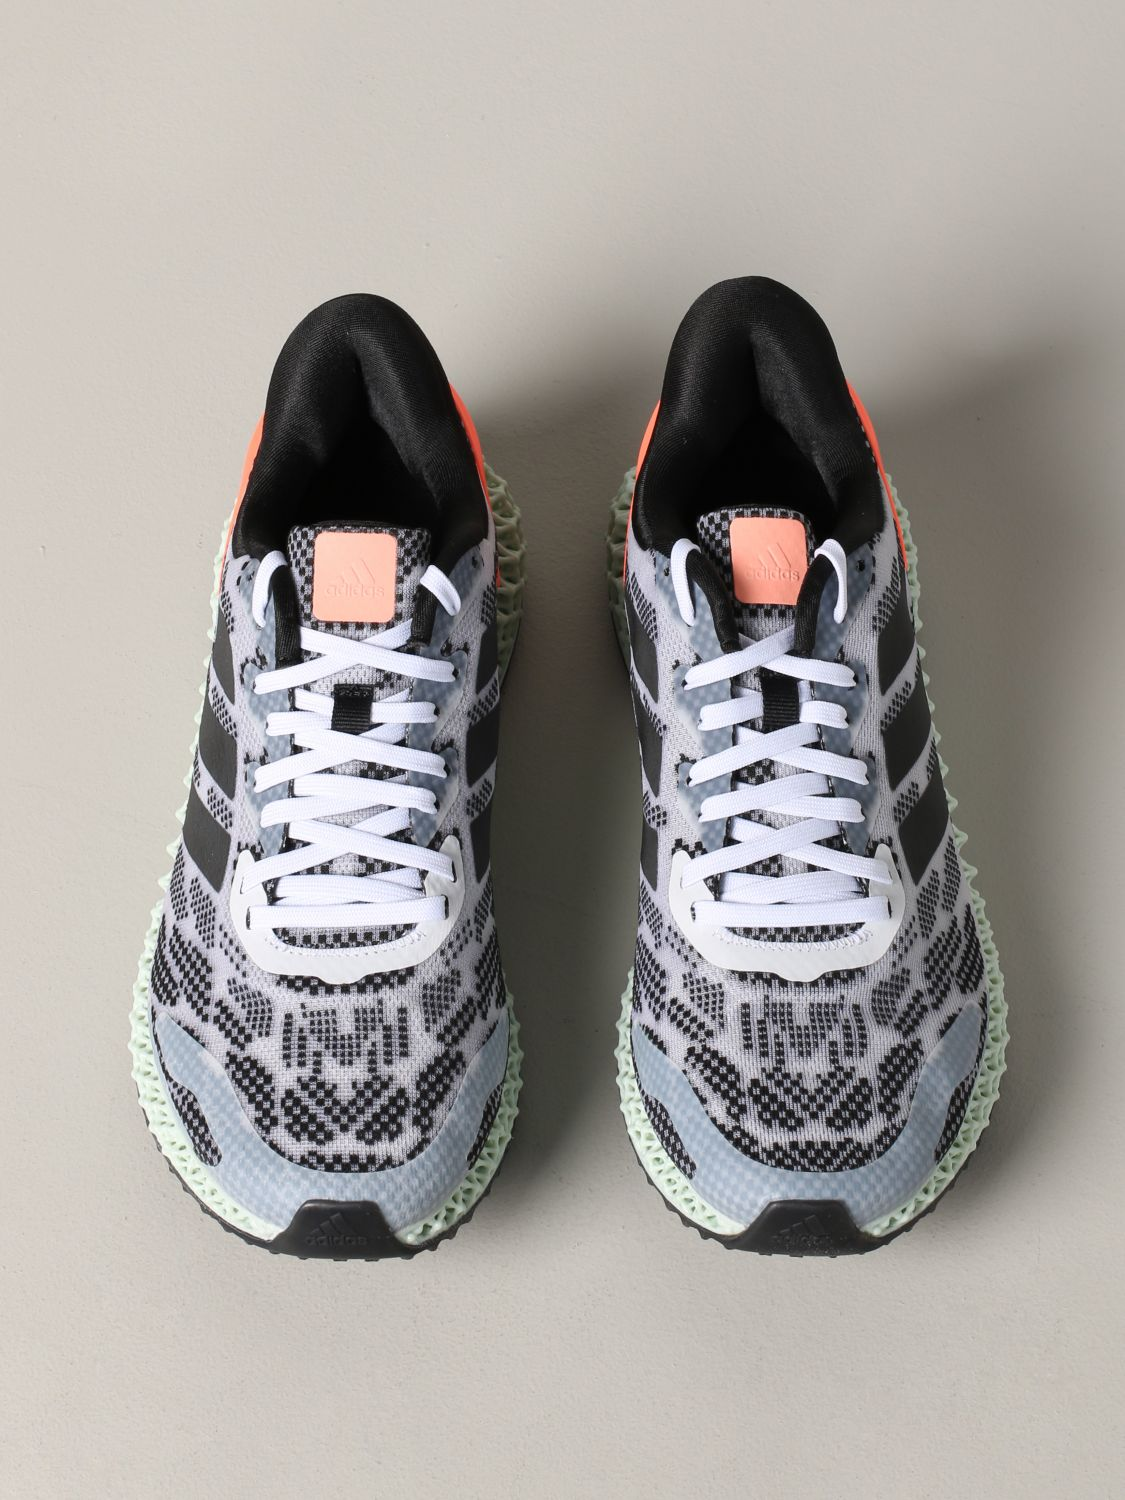 运动鞋 Adidas Originals: Adidas Originals 4d run 1.0 运动鞋 白色 3